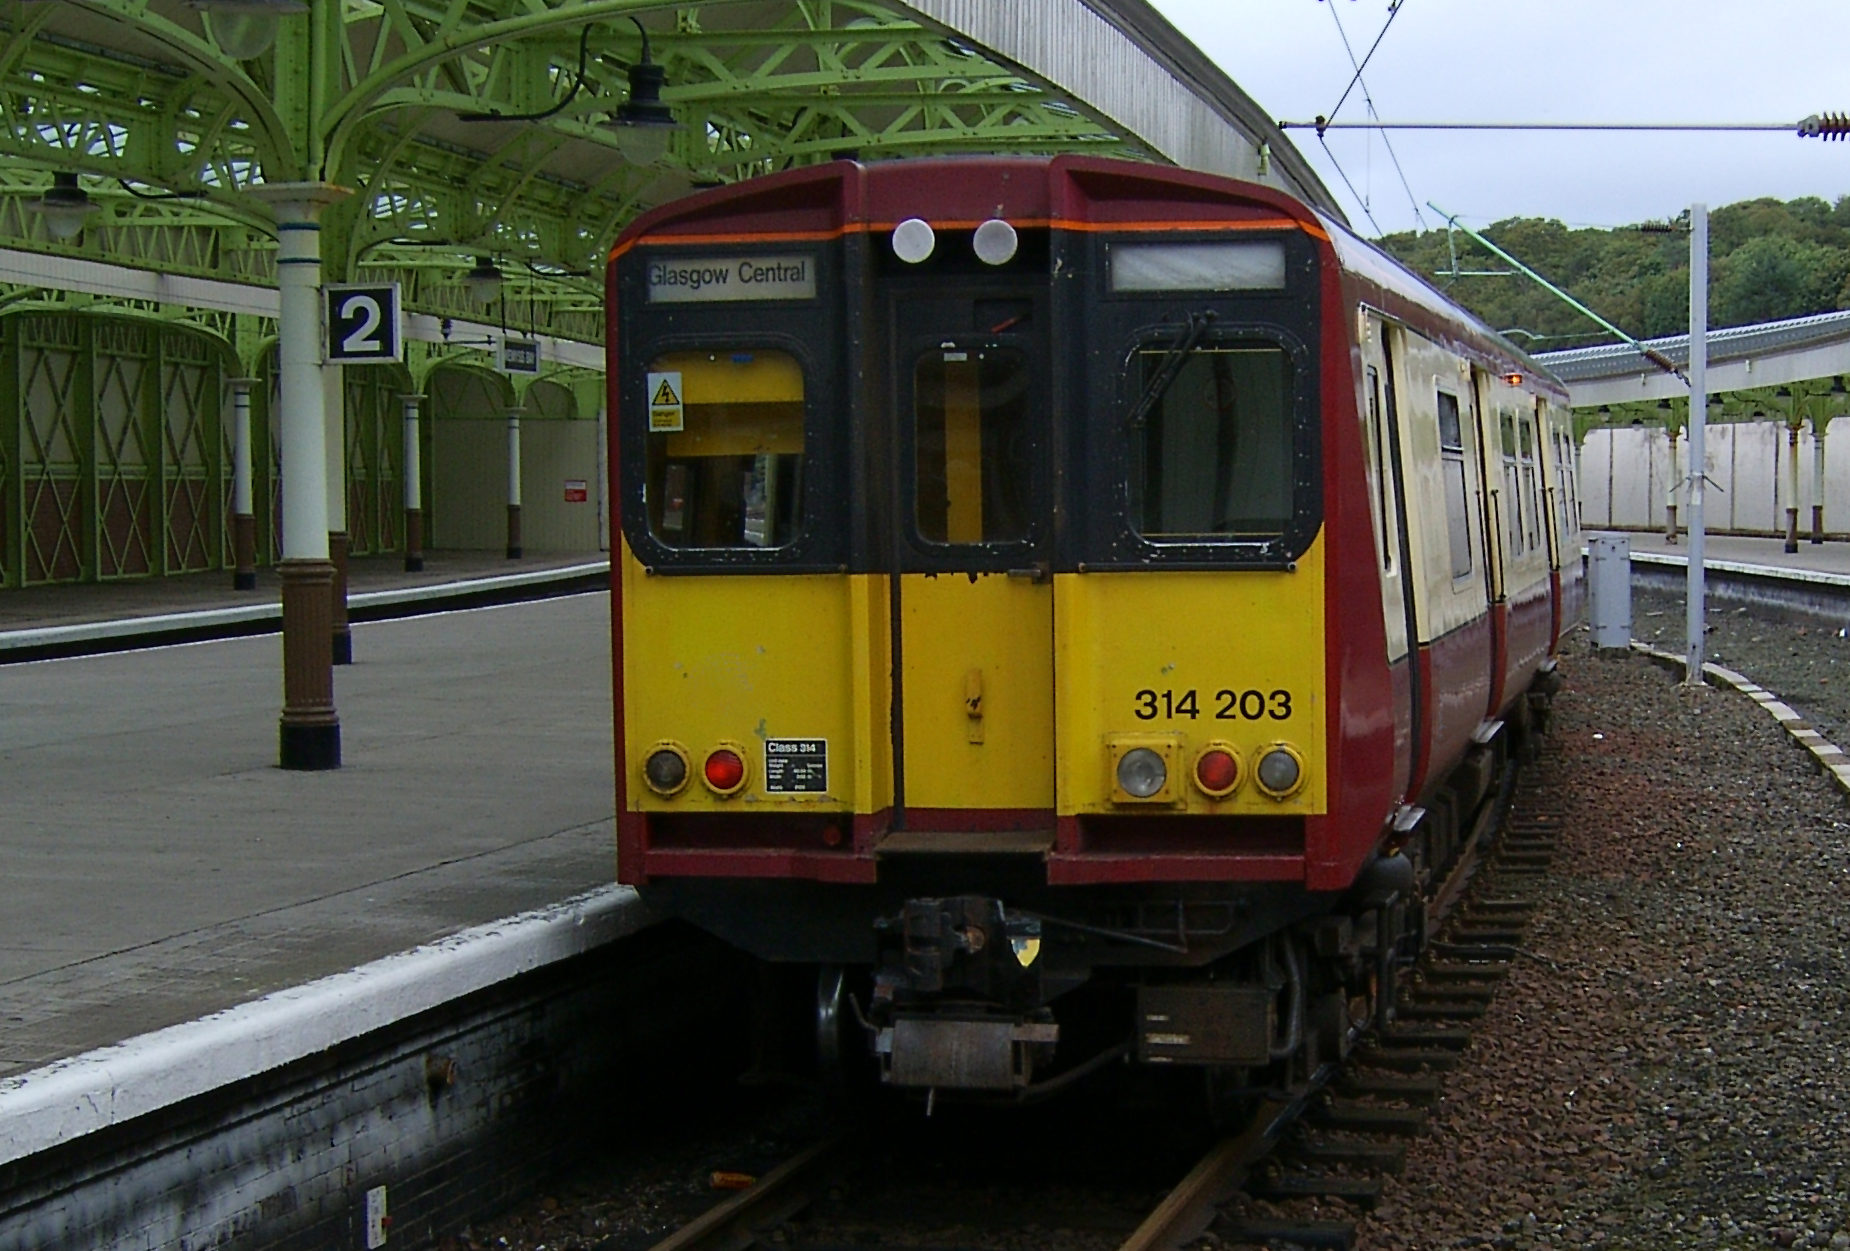 A ScotRail 314 train